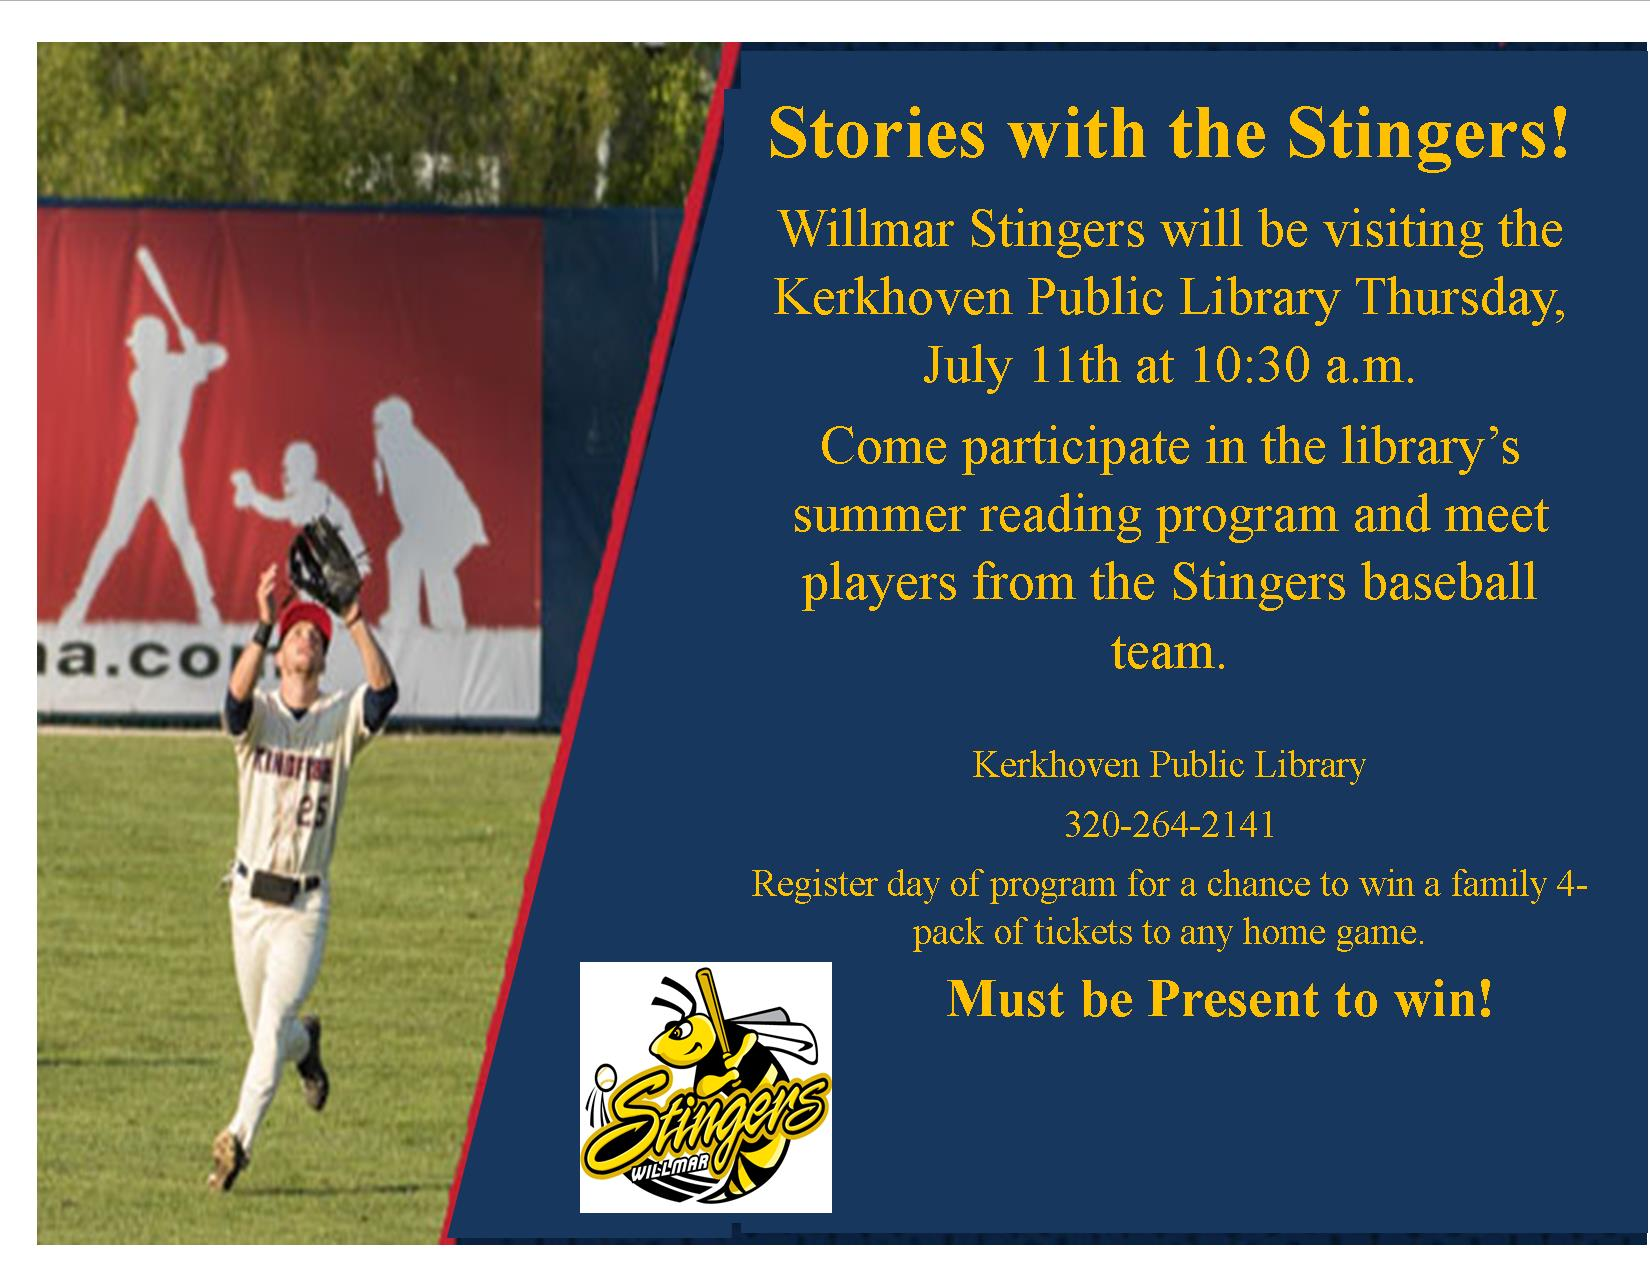 The Willmar Stingers will be coming on Thursday, July 11th at 10:30 AM for a very special Story-Time. No registration required.